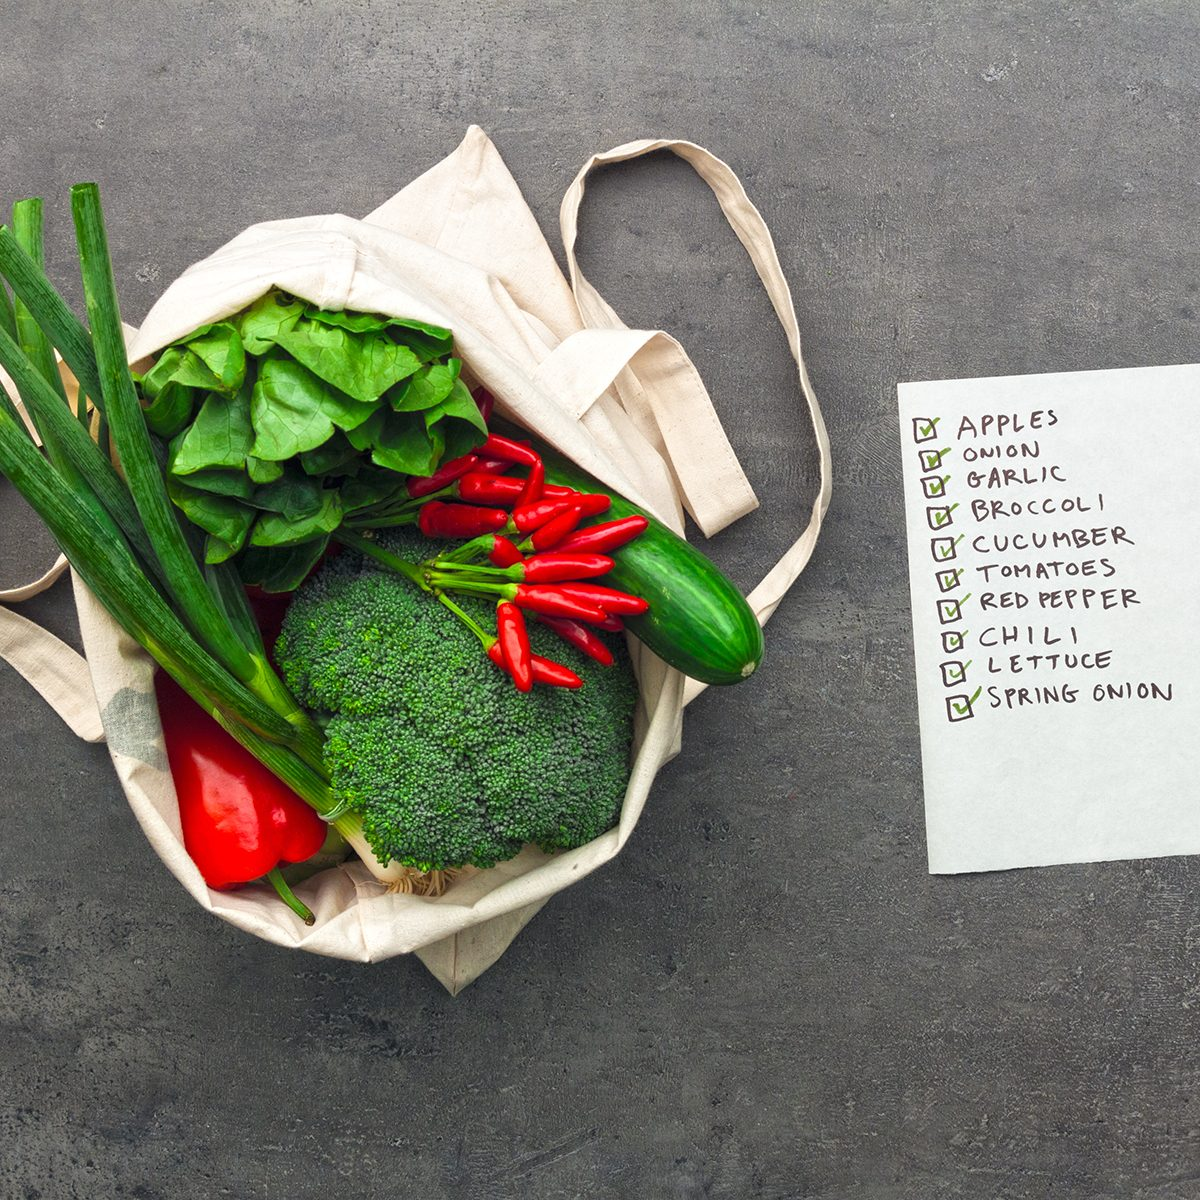 Shopping bag full of vegetables and fruits with checked shopping list.